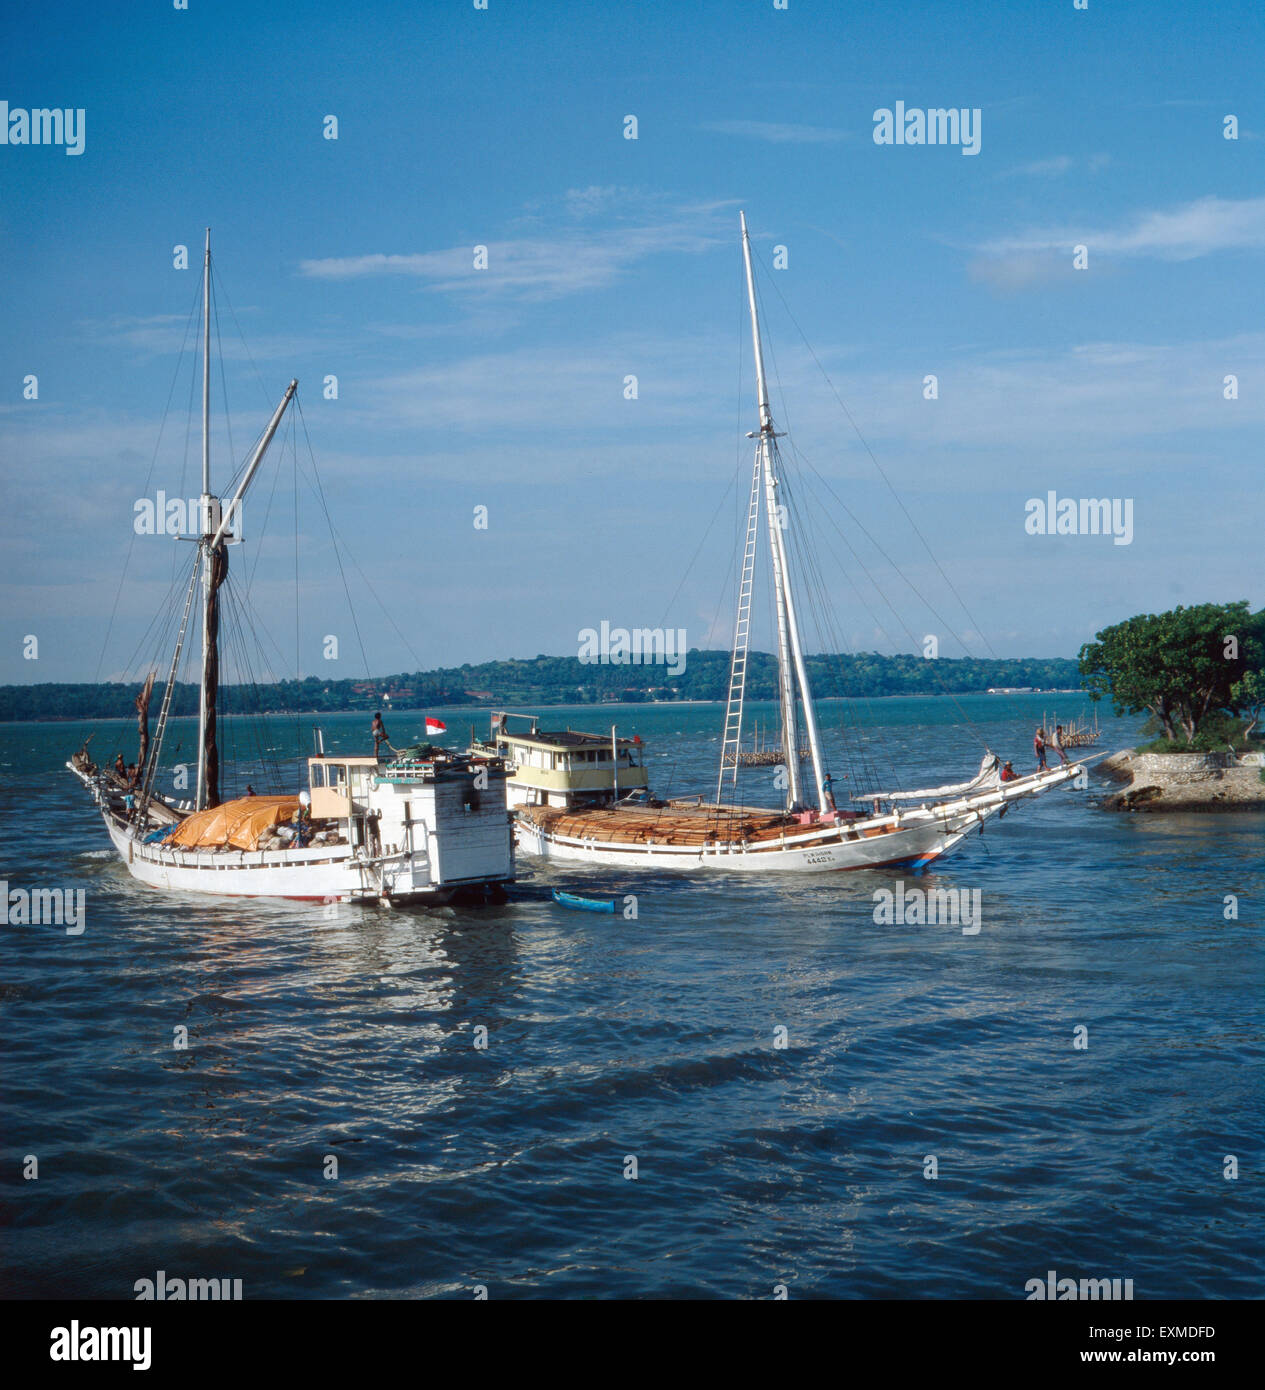 Ein Segelausflug bei Java, Indonesien 1980er Jahre. A sailing trip near the island of Java, Indonesia 1980s. - Stock Image